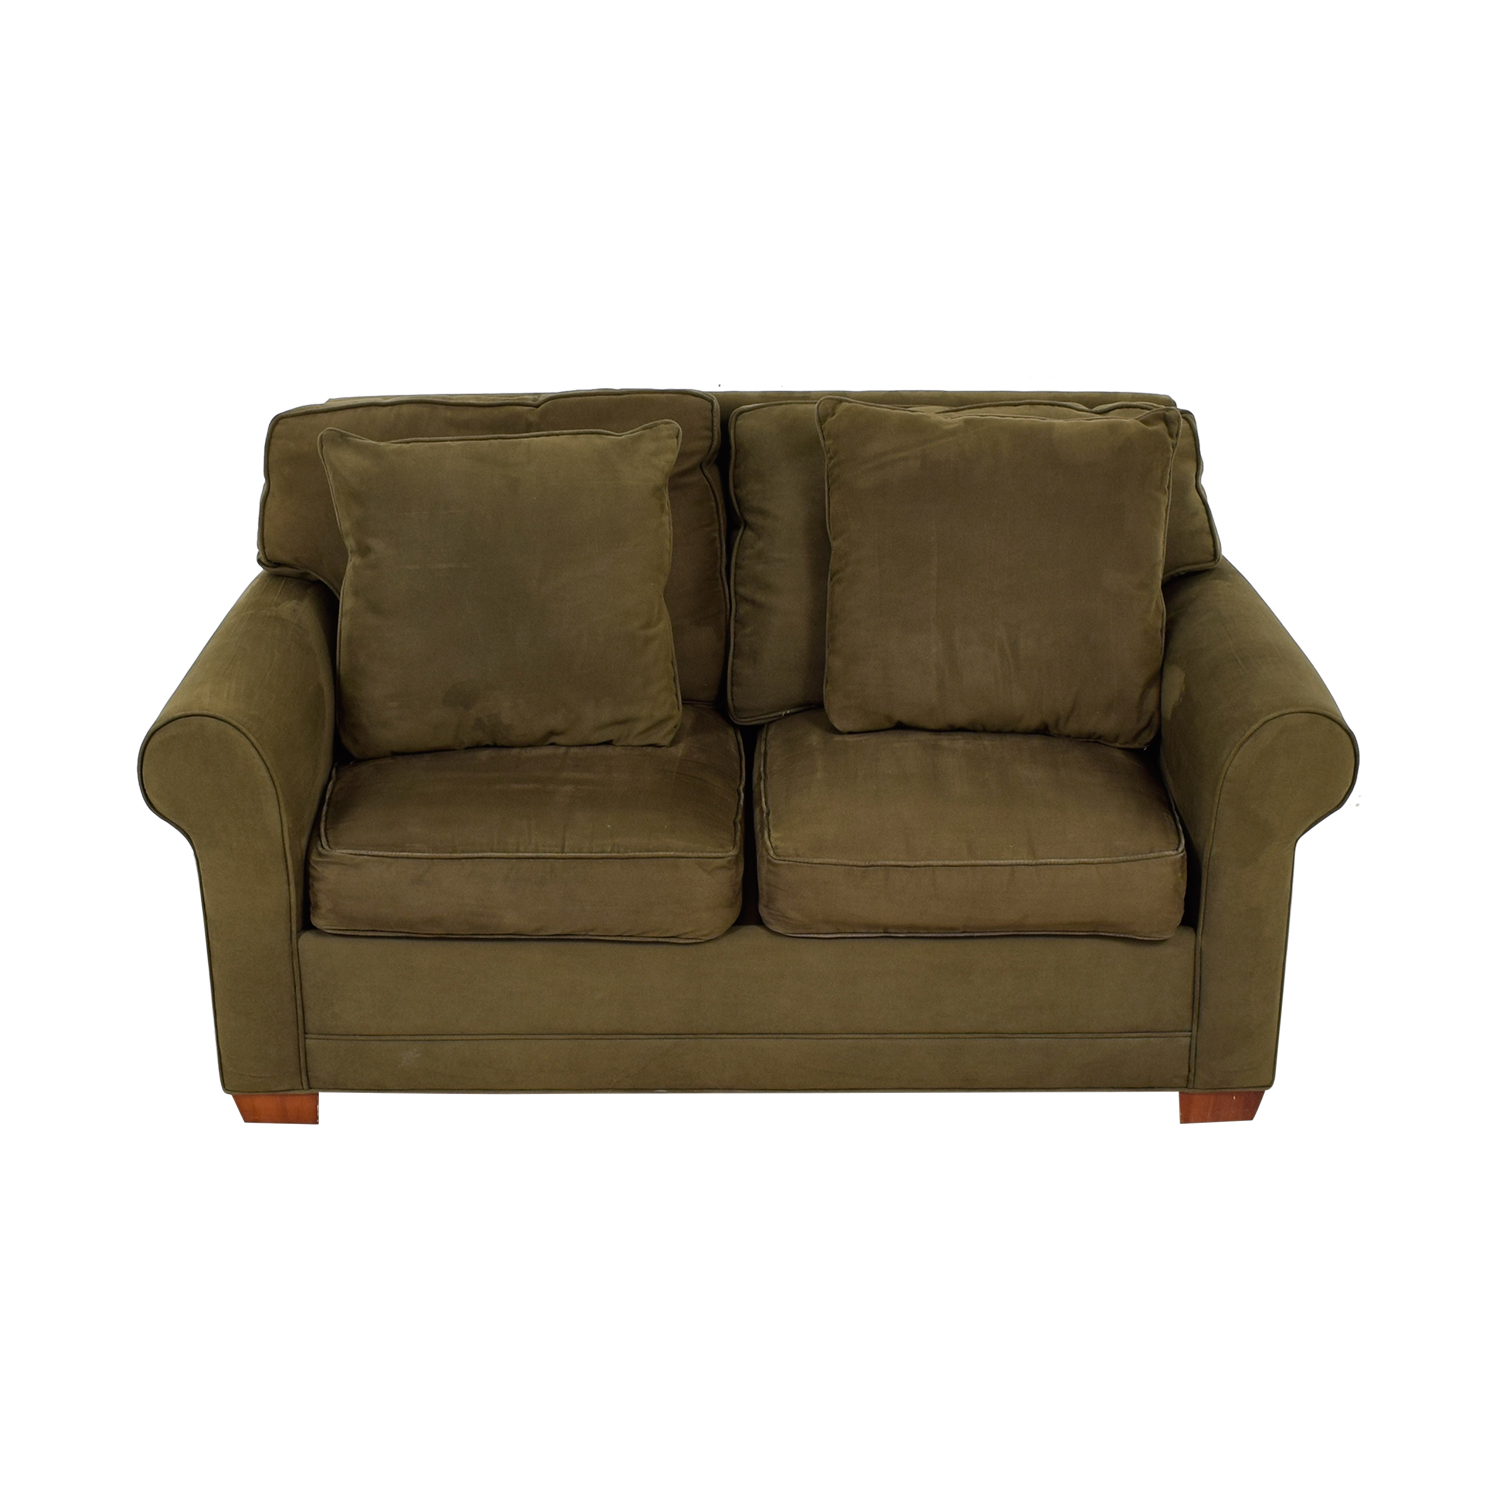 Raymour & Flanigan Raymour & Flanigan Brown Suede Two-Cushion Loveseat on sale